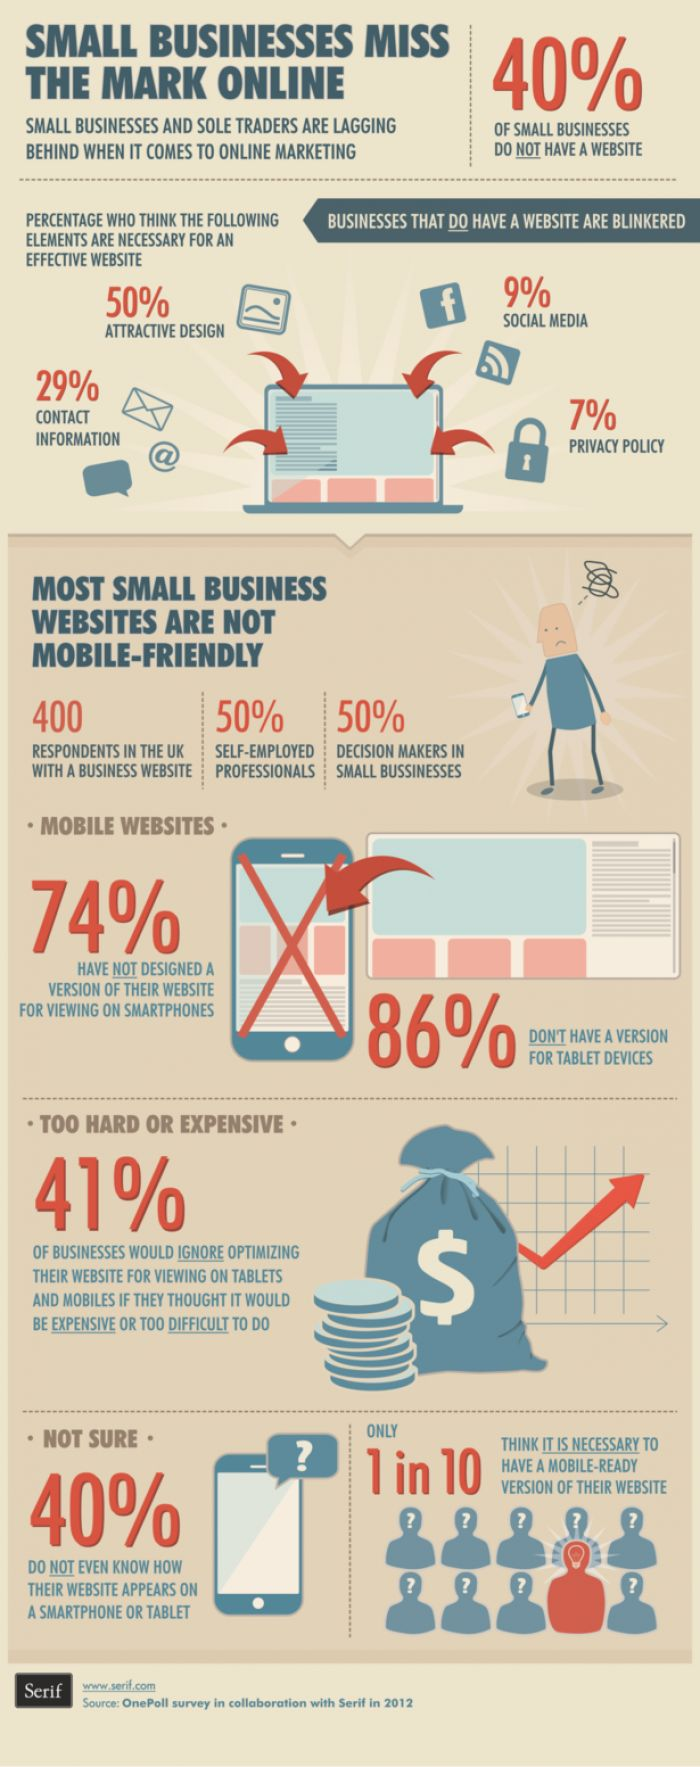 Online marketing lag for small businesses